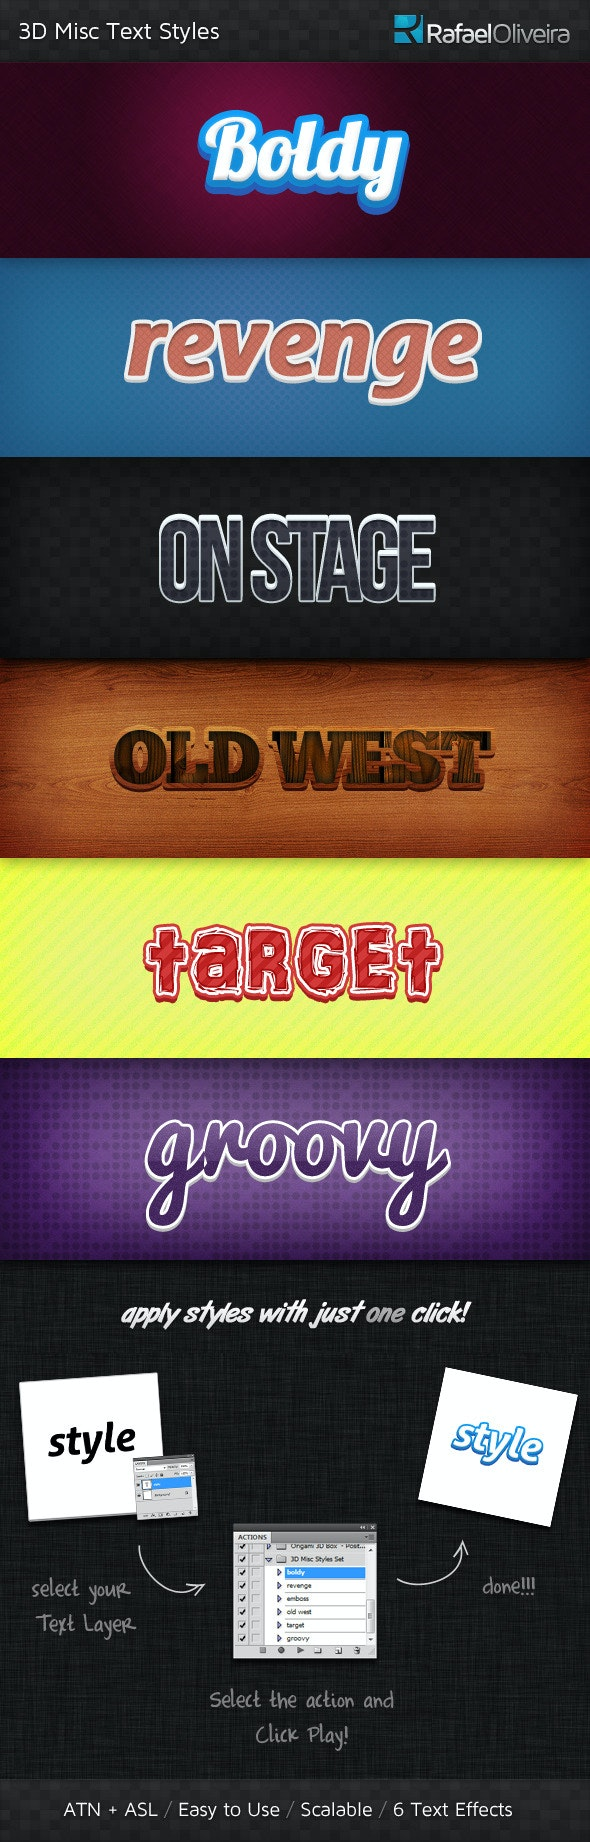 3D Misc Text Styles - Text Effects Styles